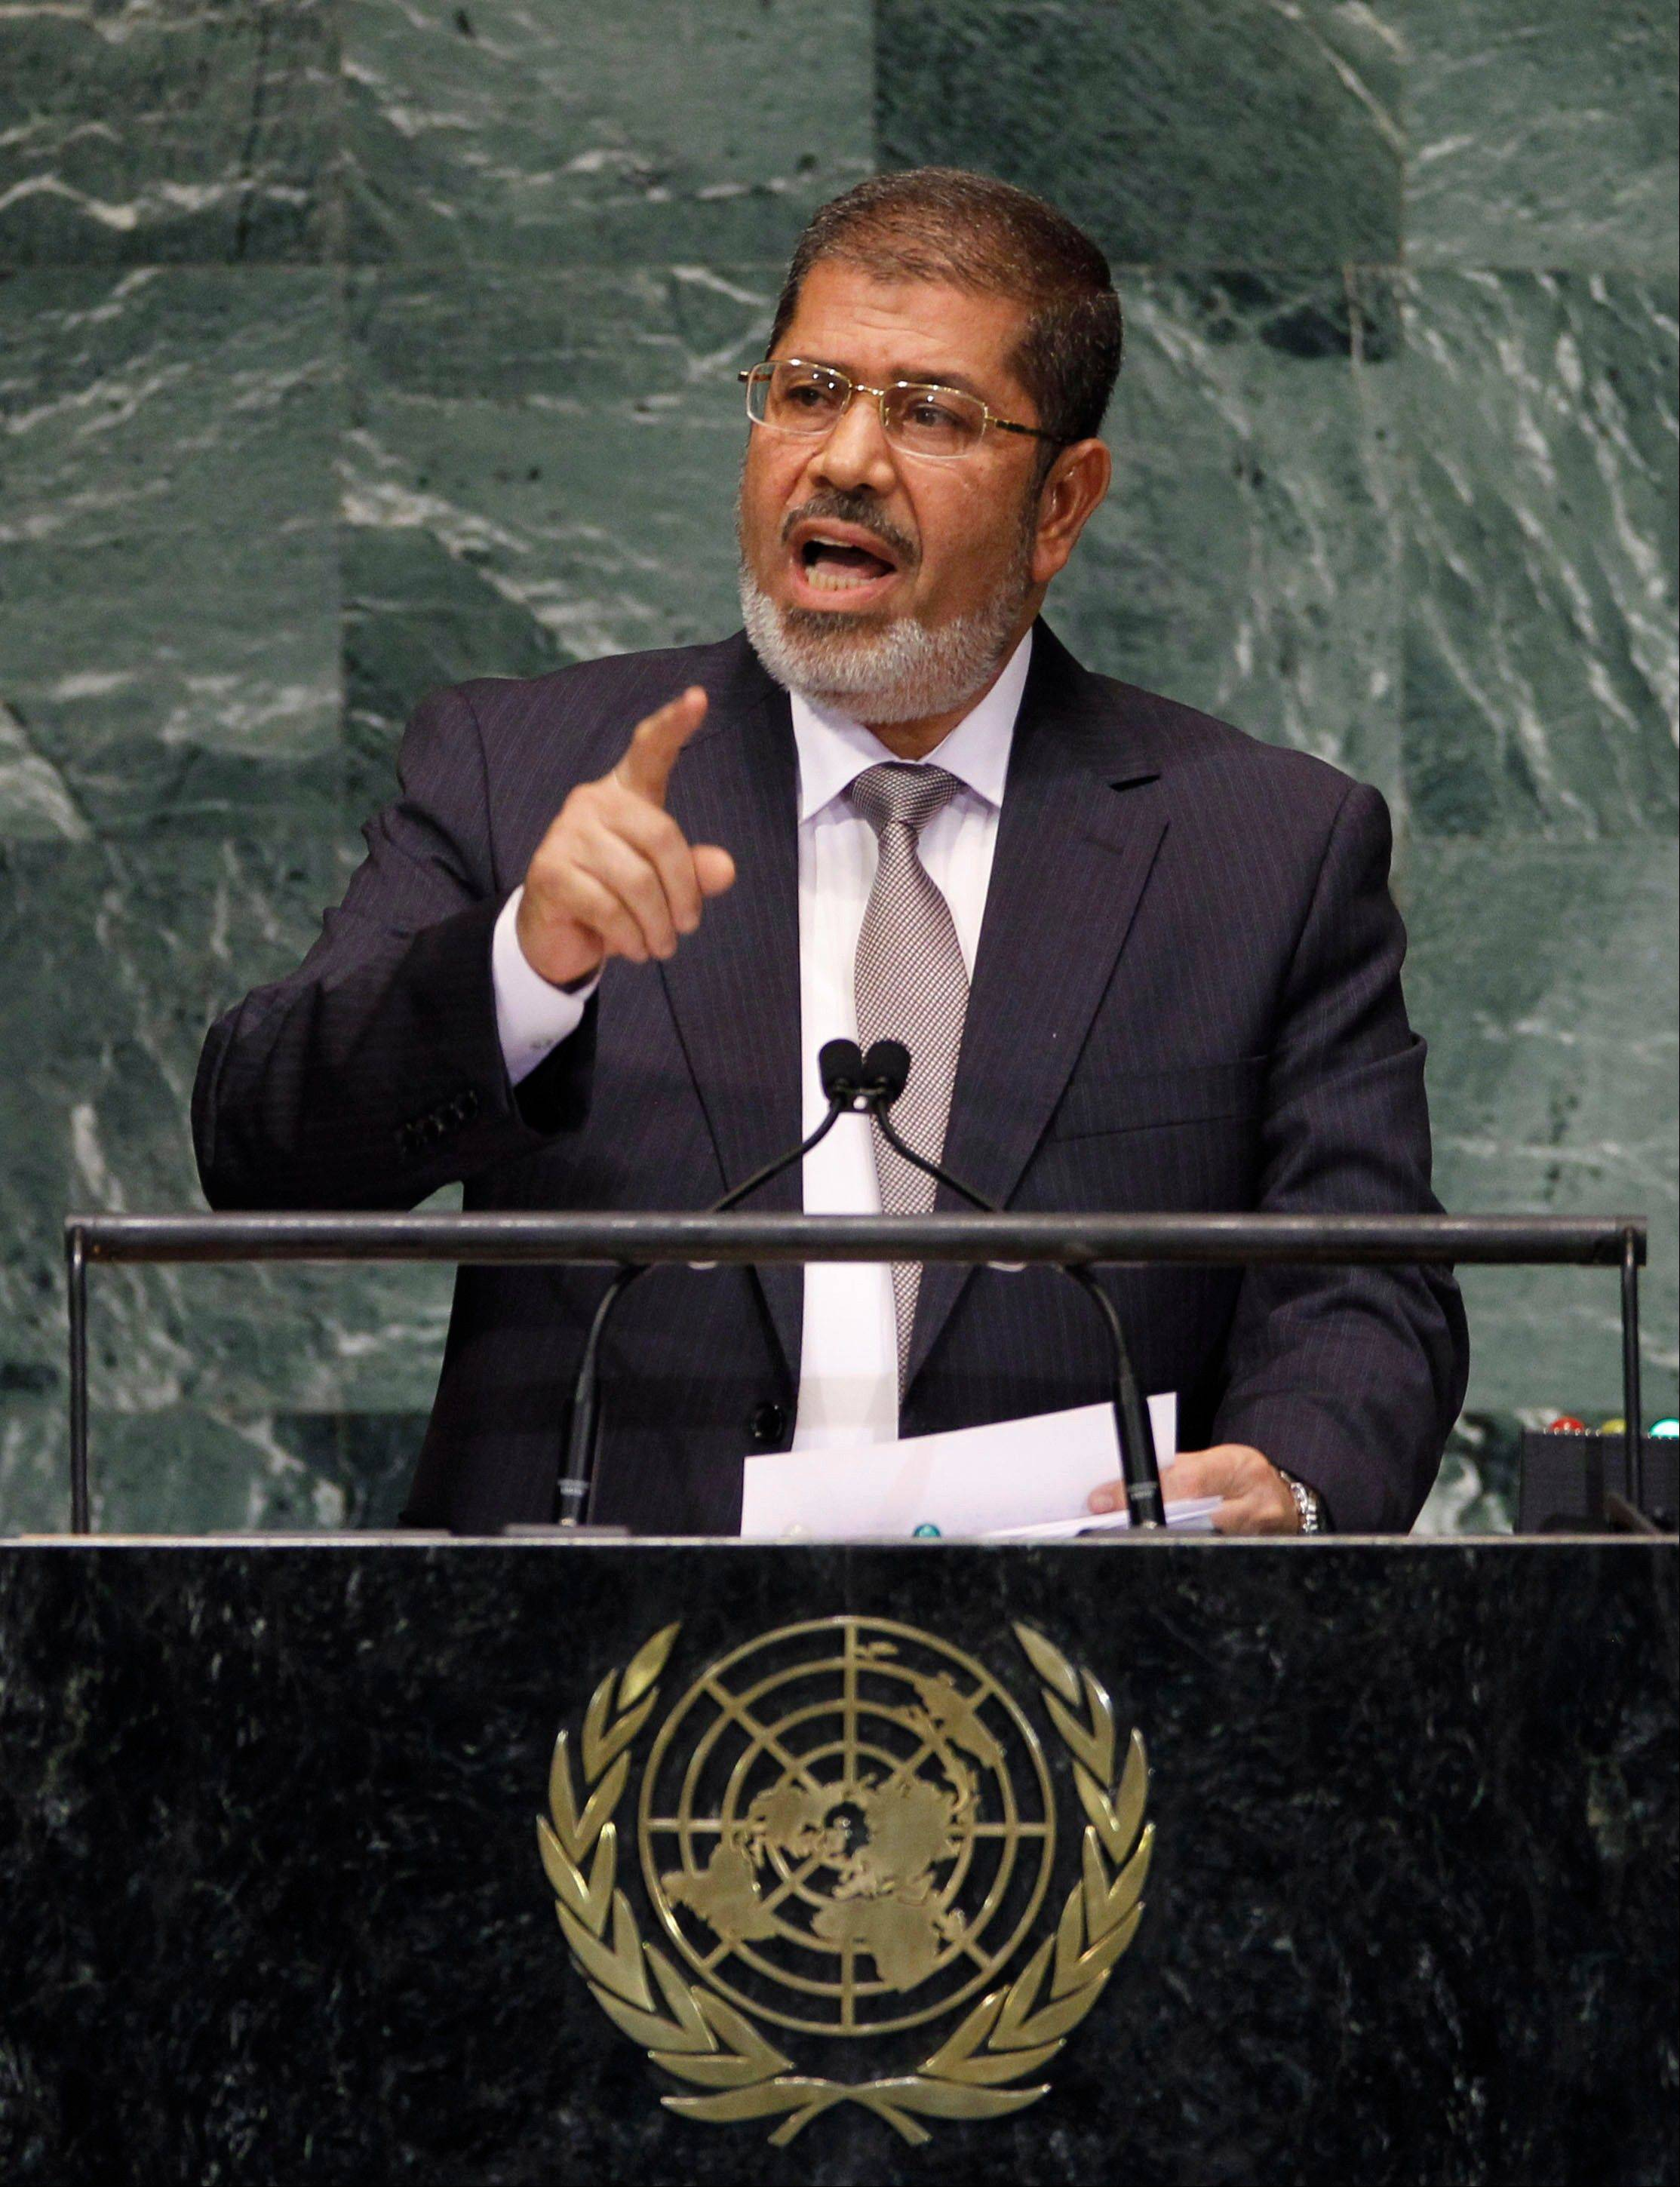 Mohammed Morsi, President of Egypt, addresses the 67th session of the United Nations General Assembly at U.N. headquarters Wednesday.